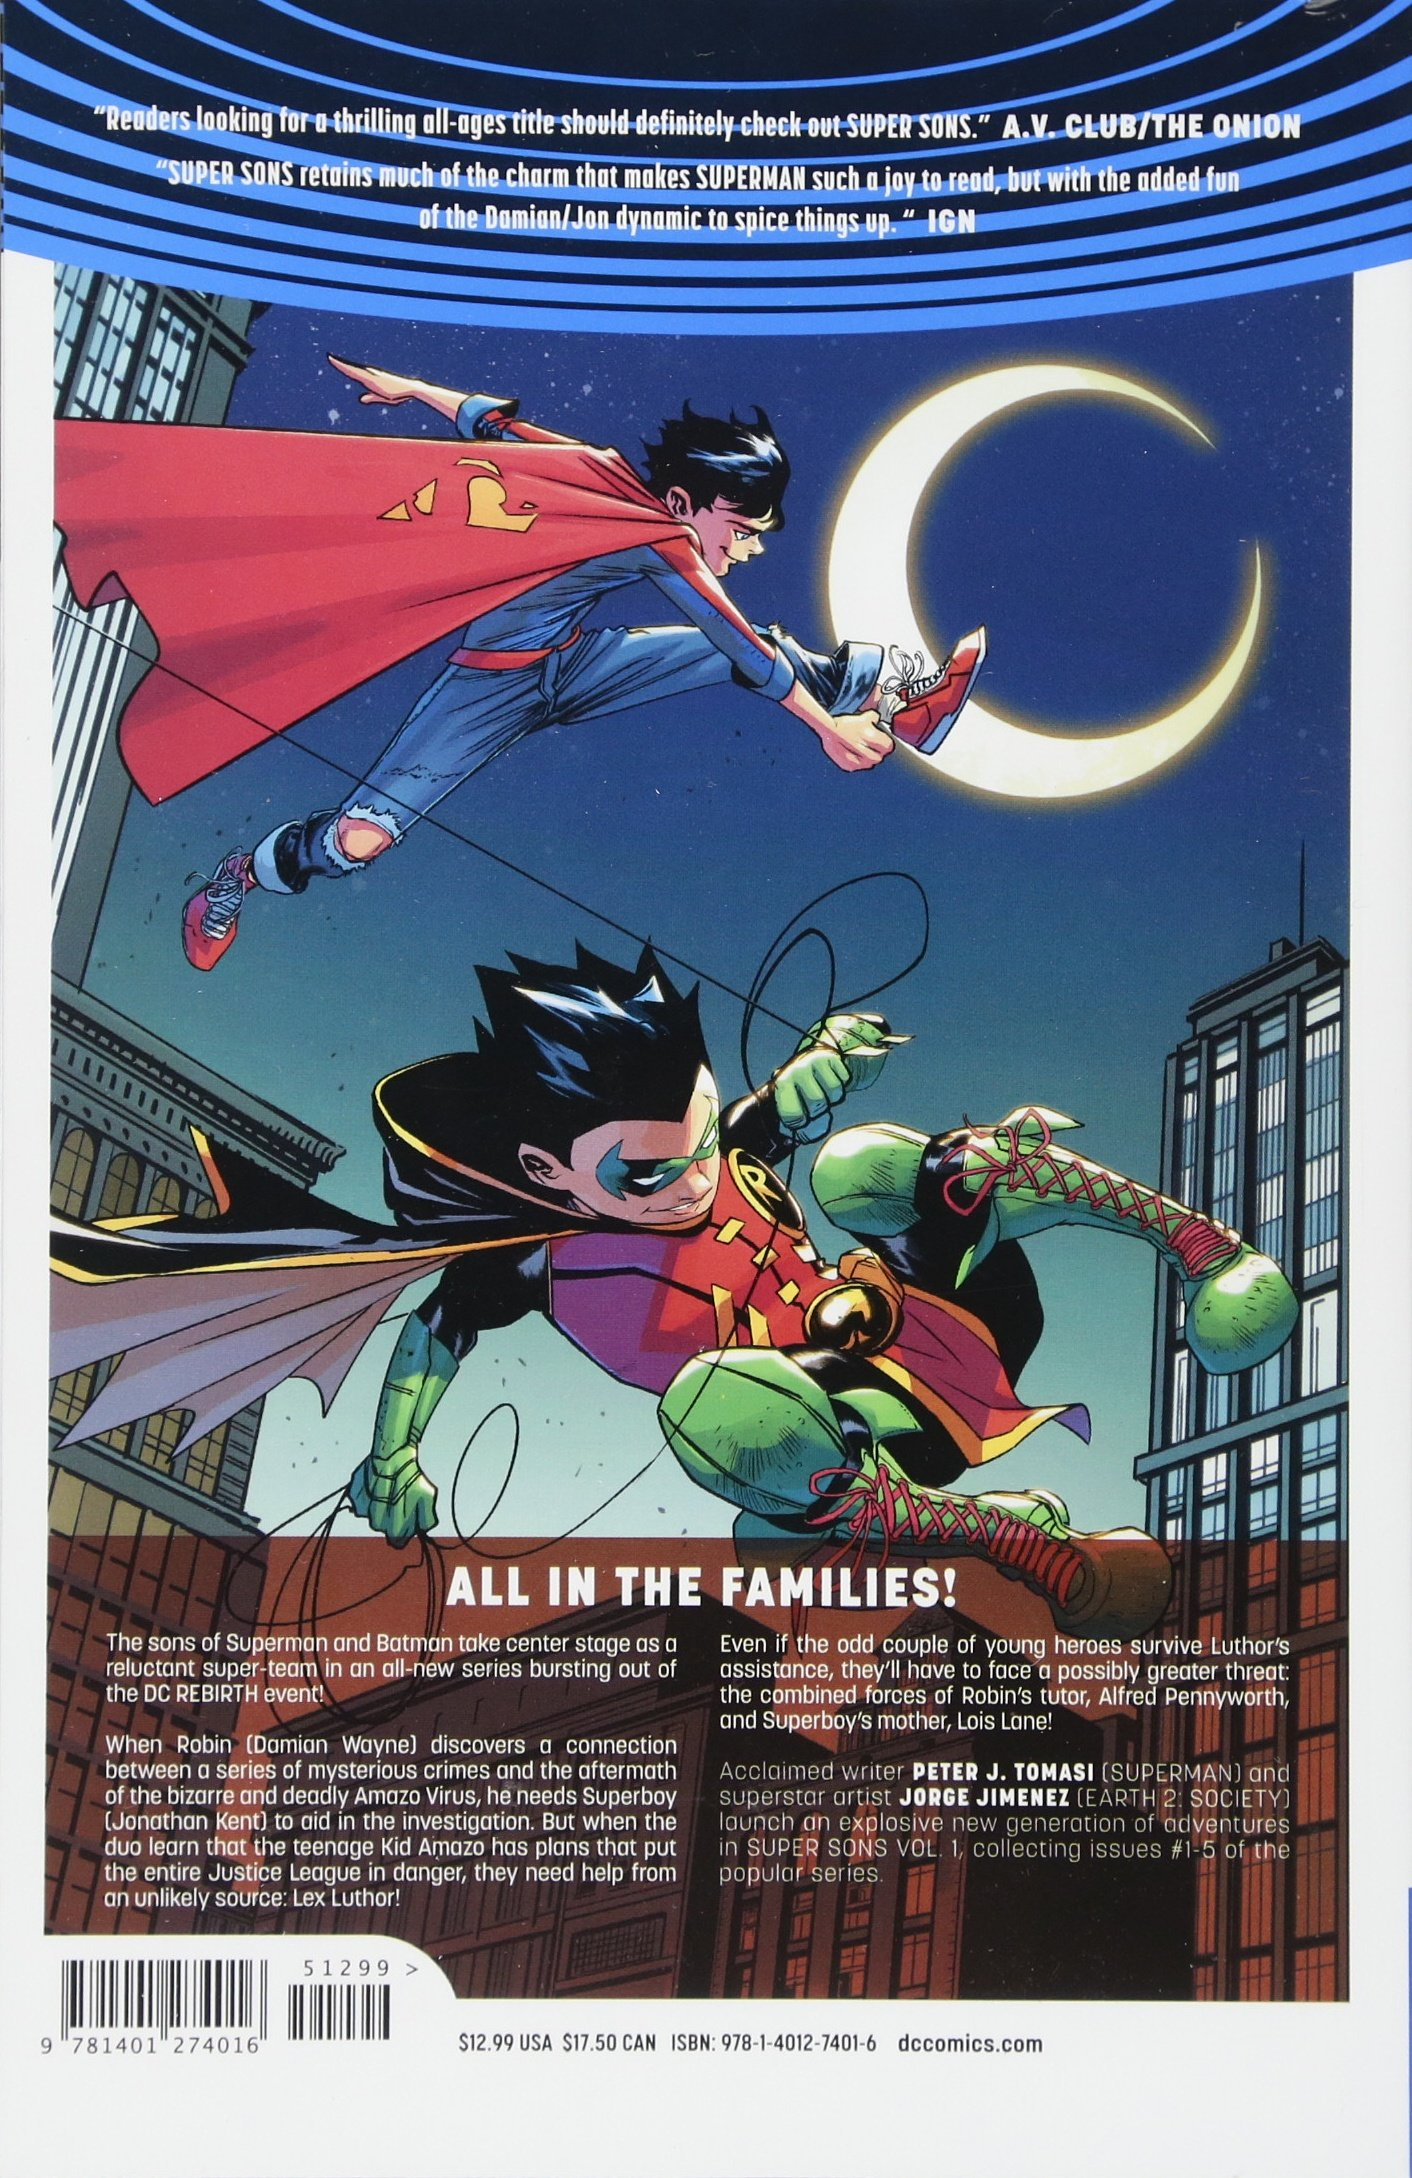 Super Sons Volume 1 (Super Sons - Rebirth): Amazon co uk